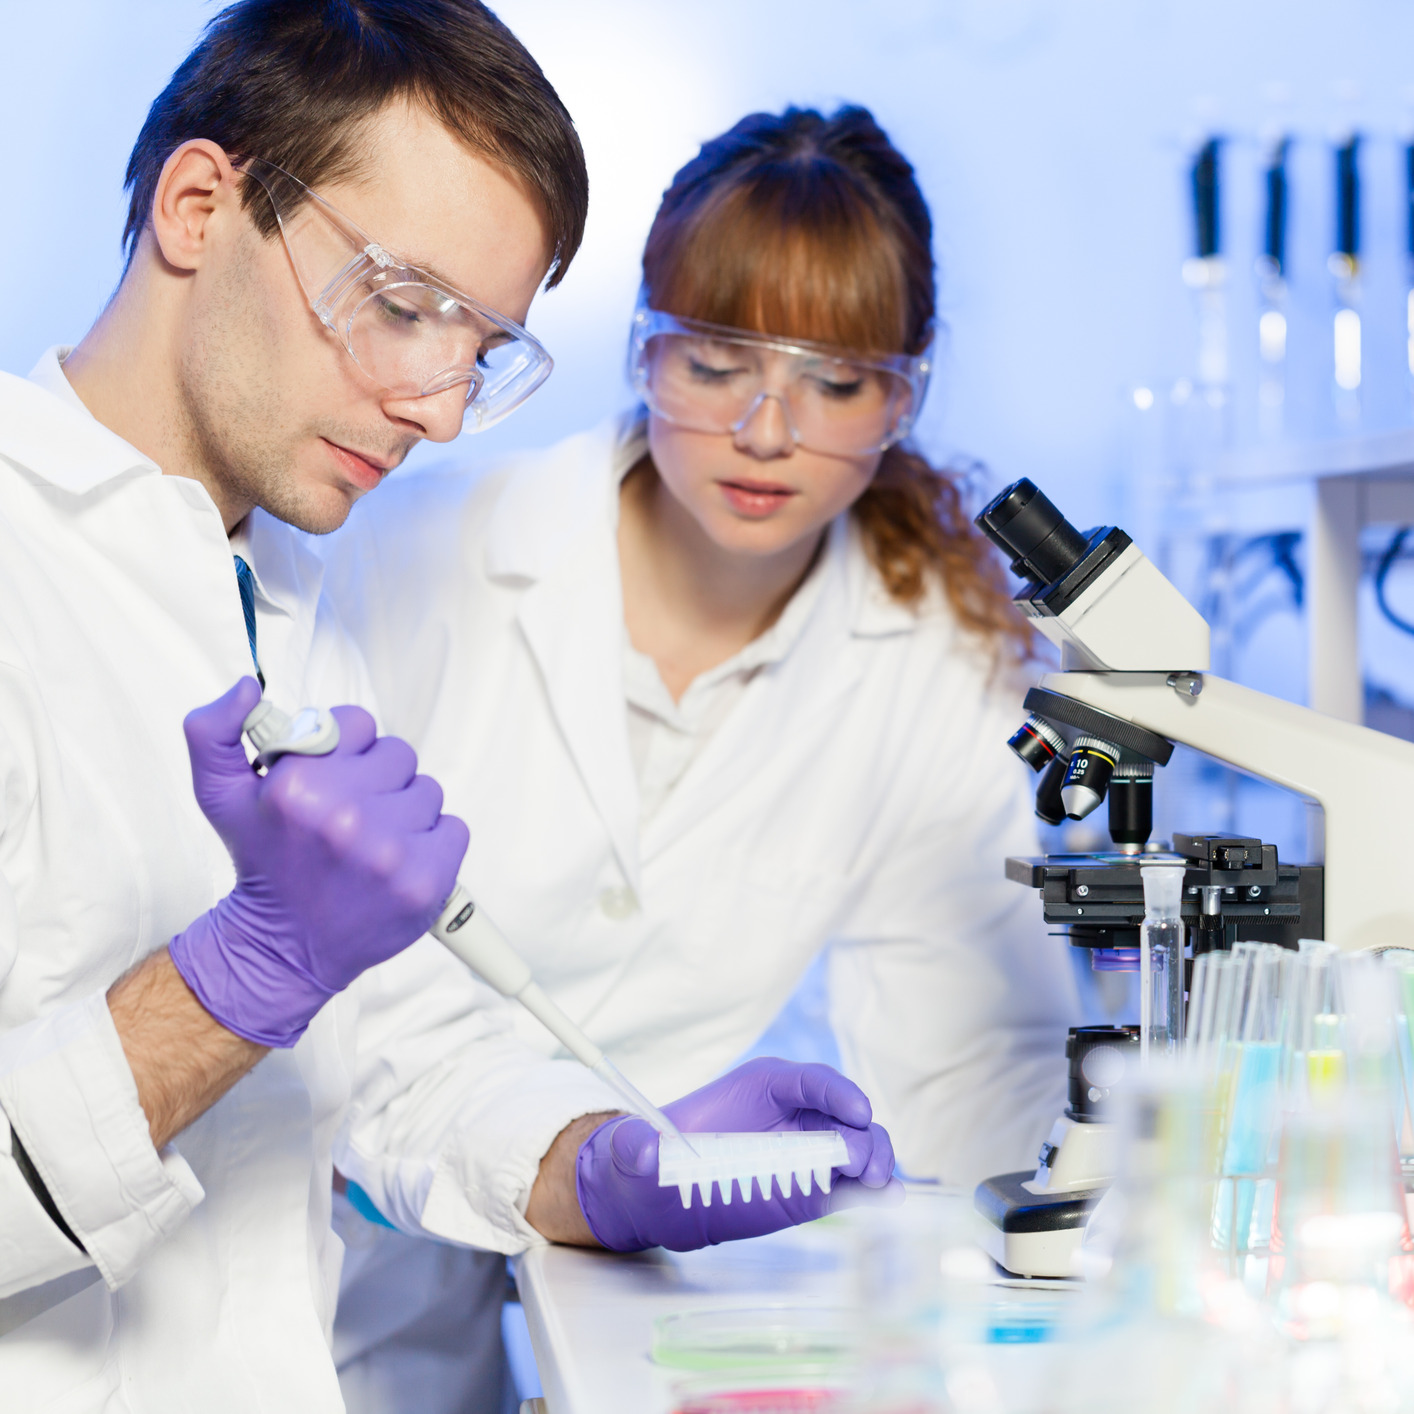 Laboratory researchers professionals pipetting into a well plate